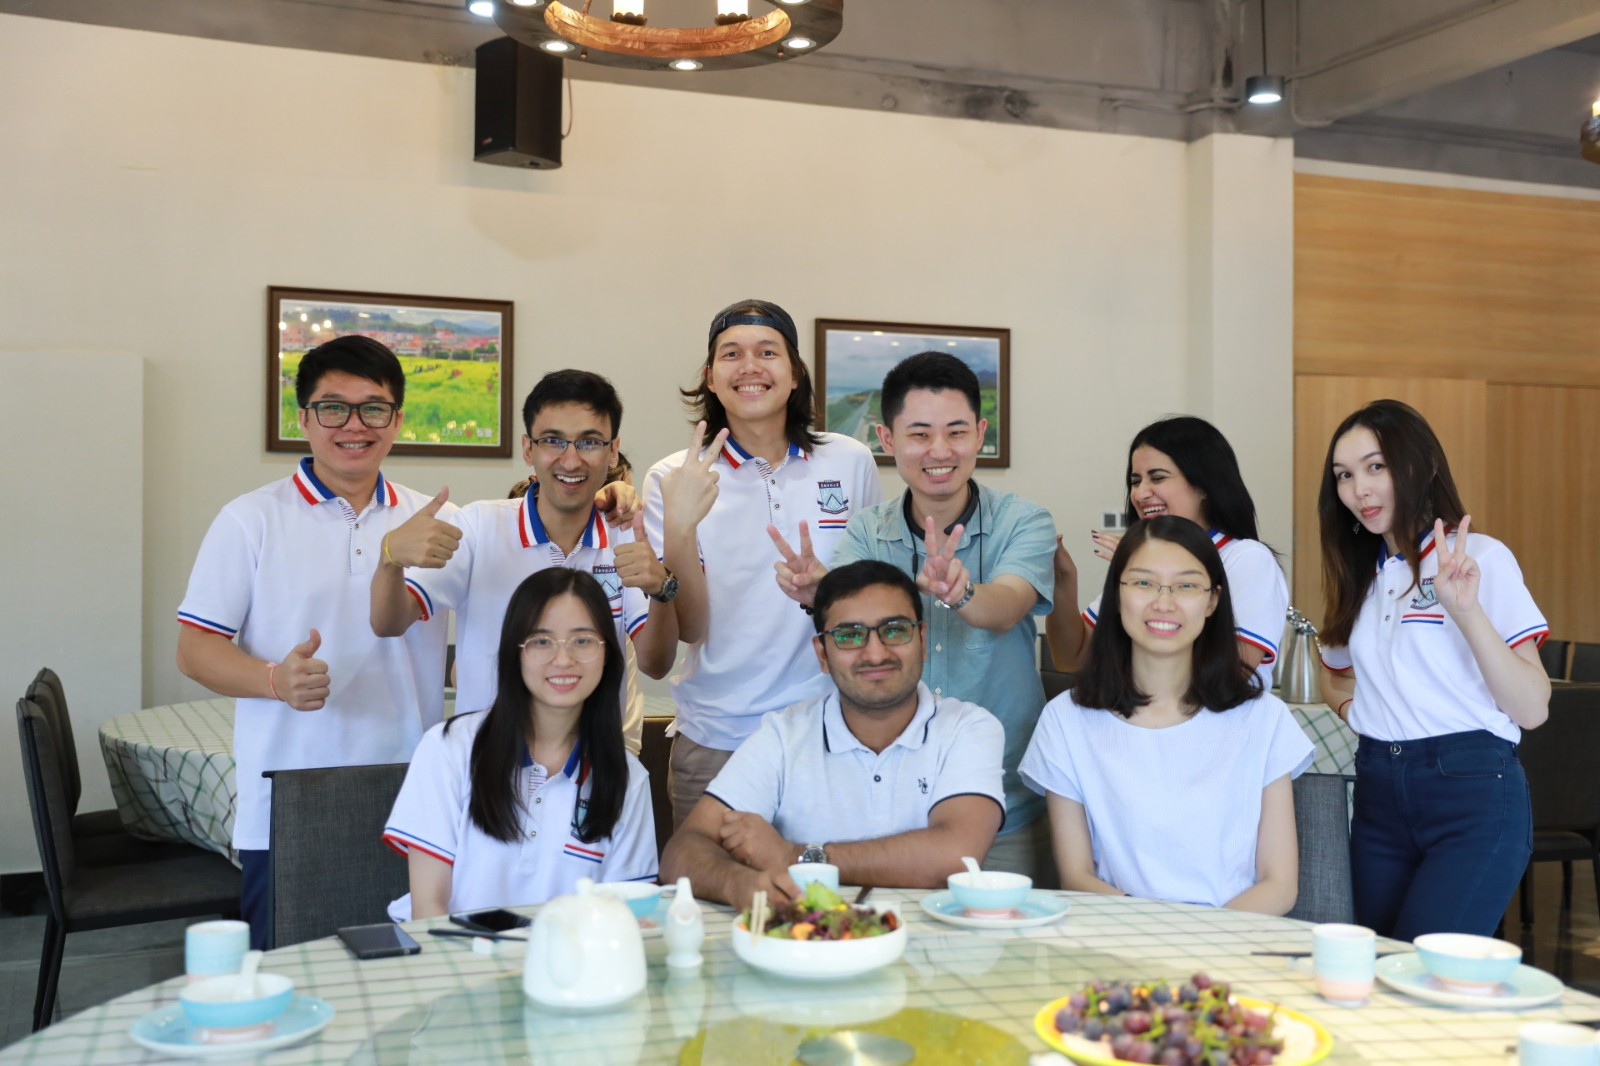 Abbas Zaheer (second left, back row) enjoys his time with his friends in China.jpg